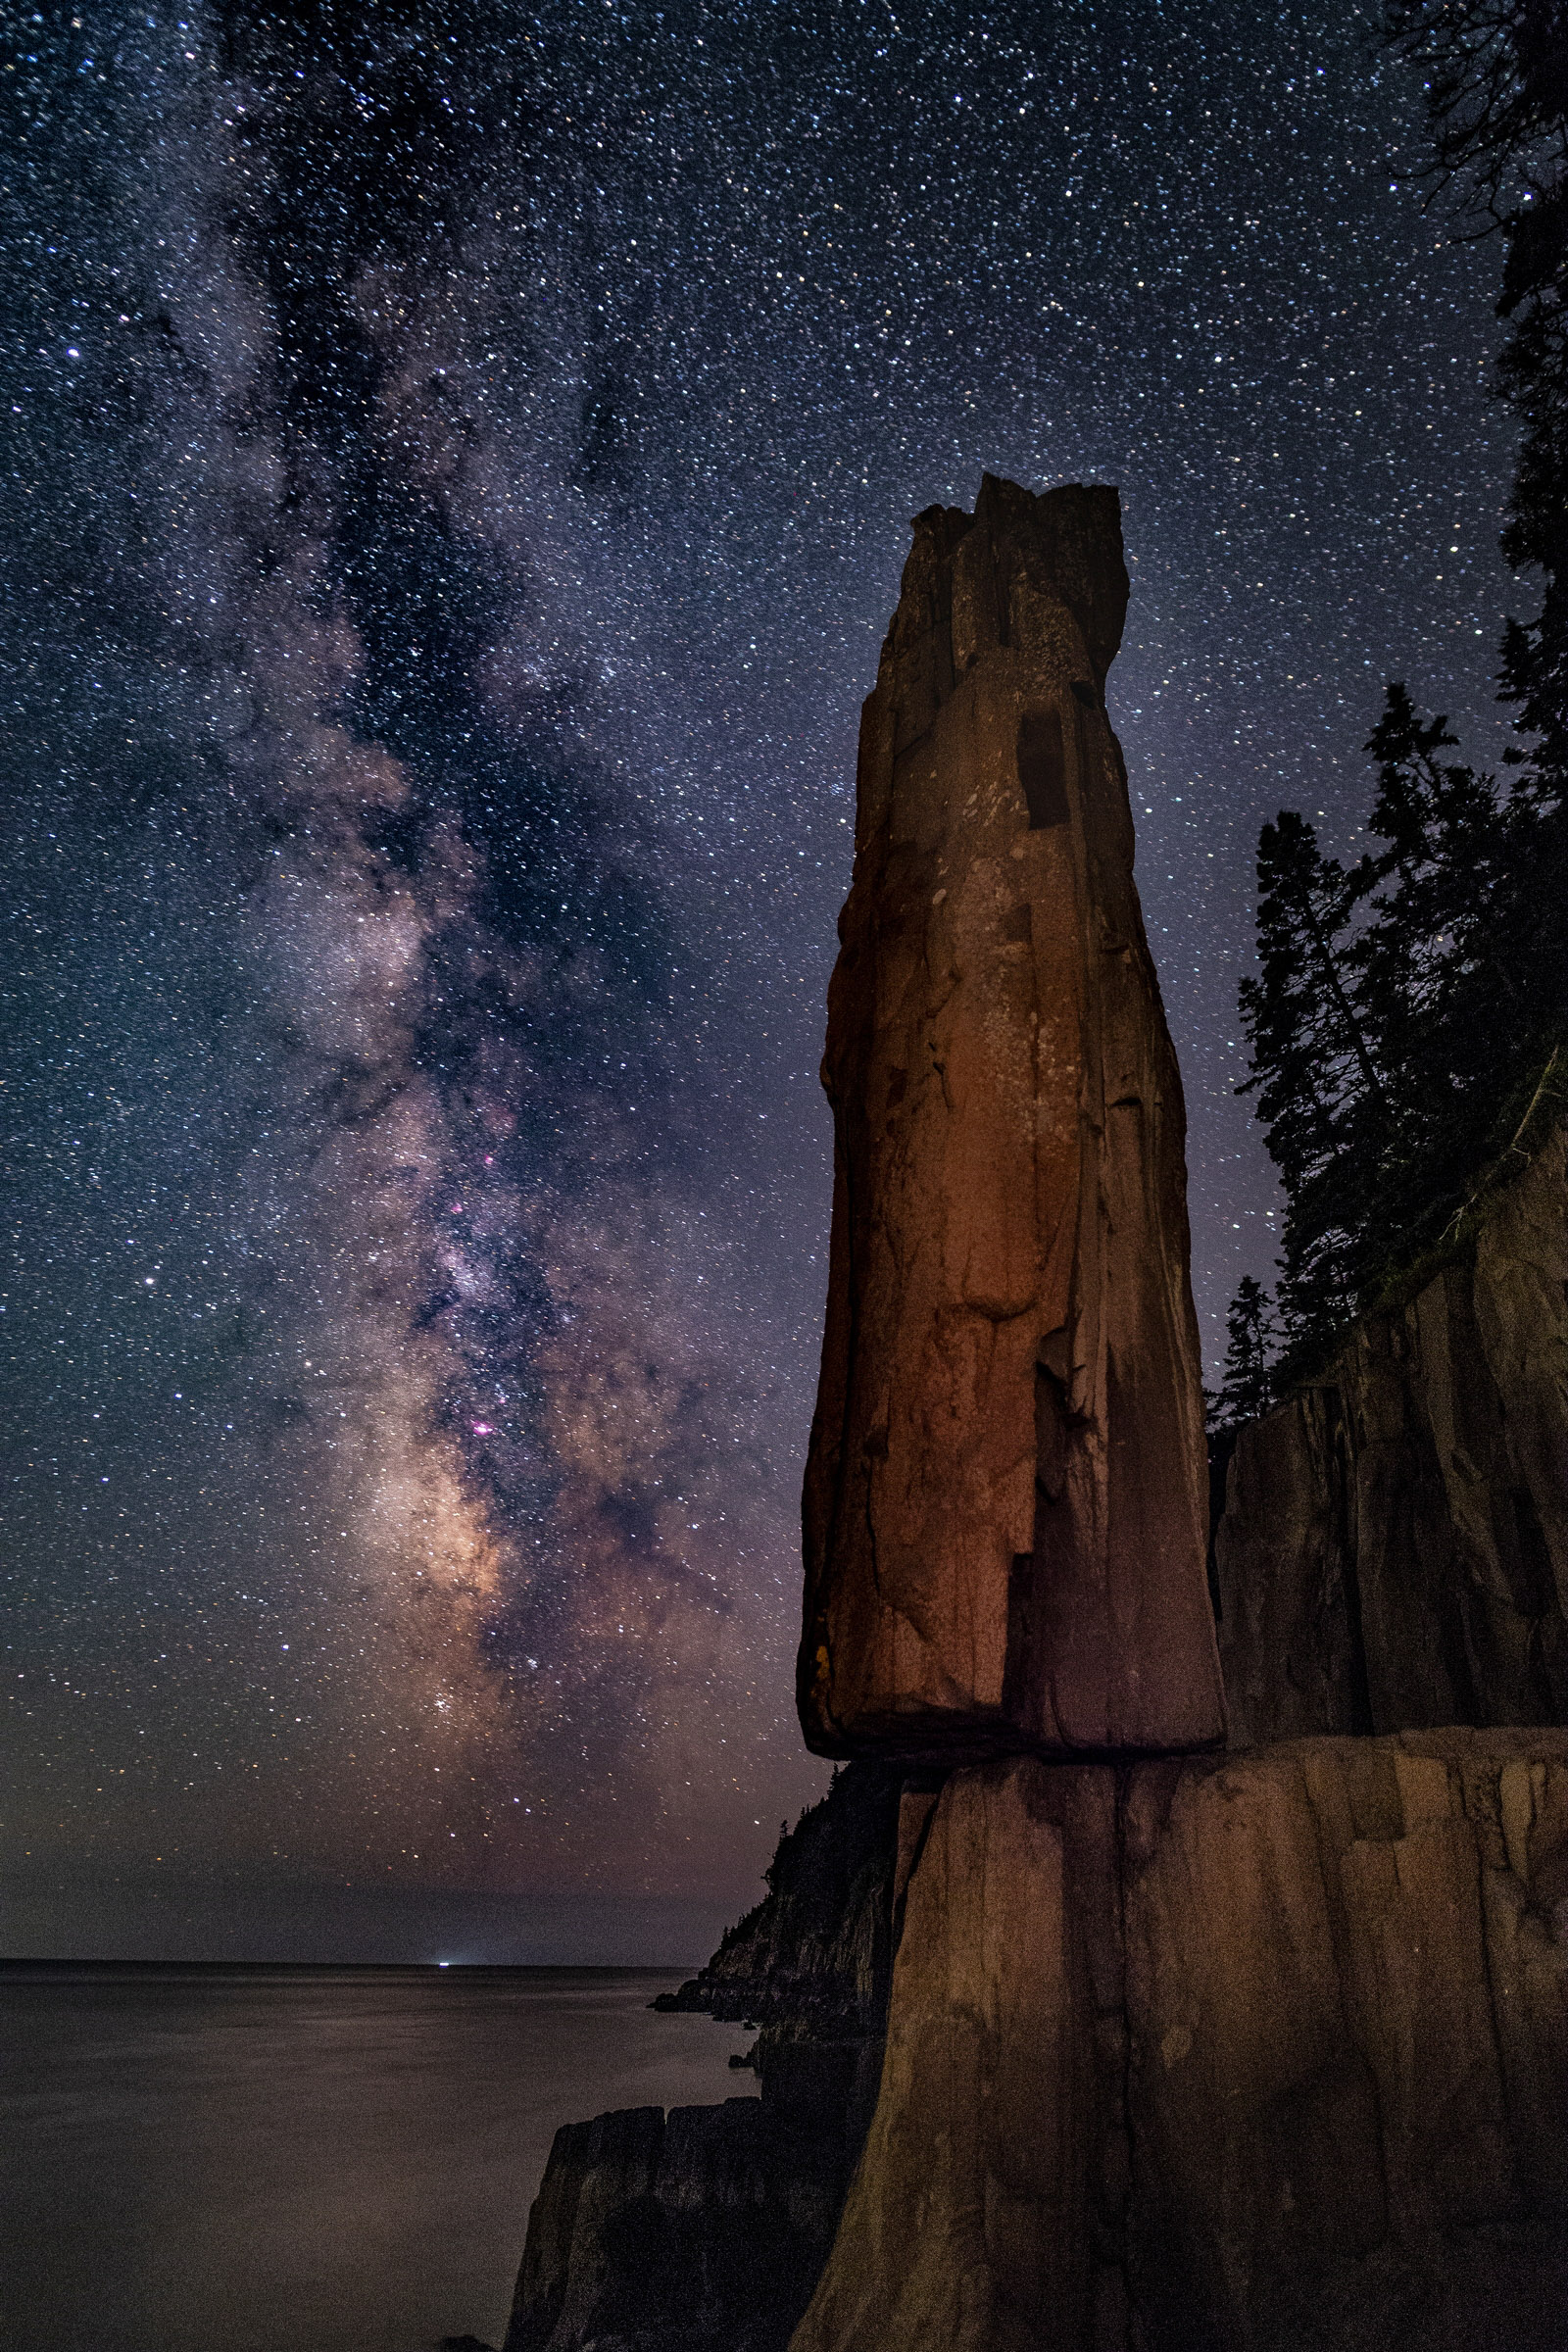 29 Balancing Rock and Milky Way